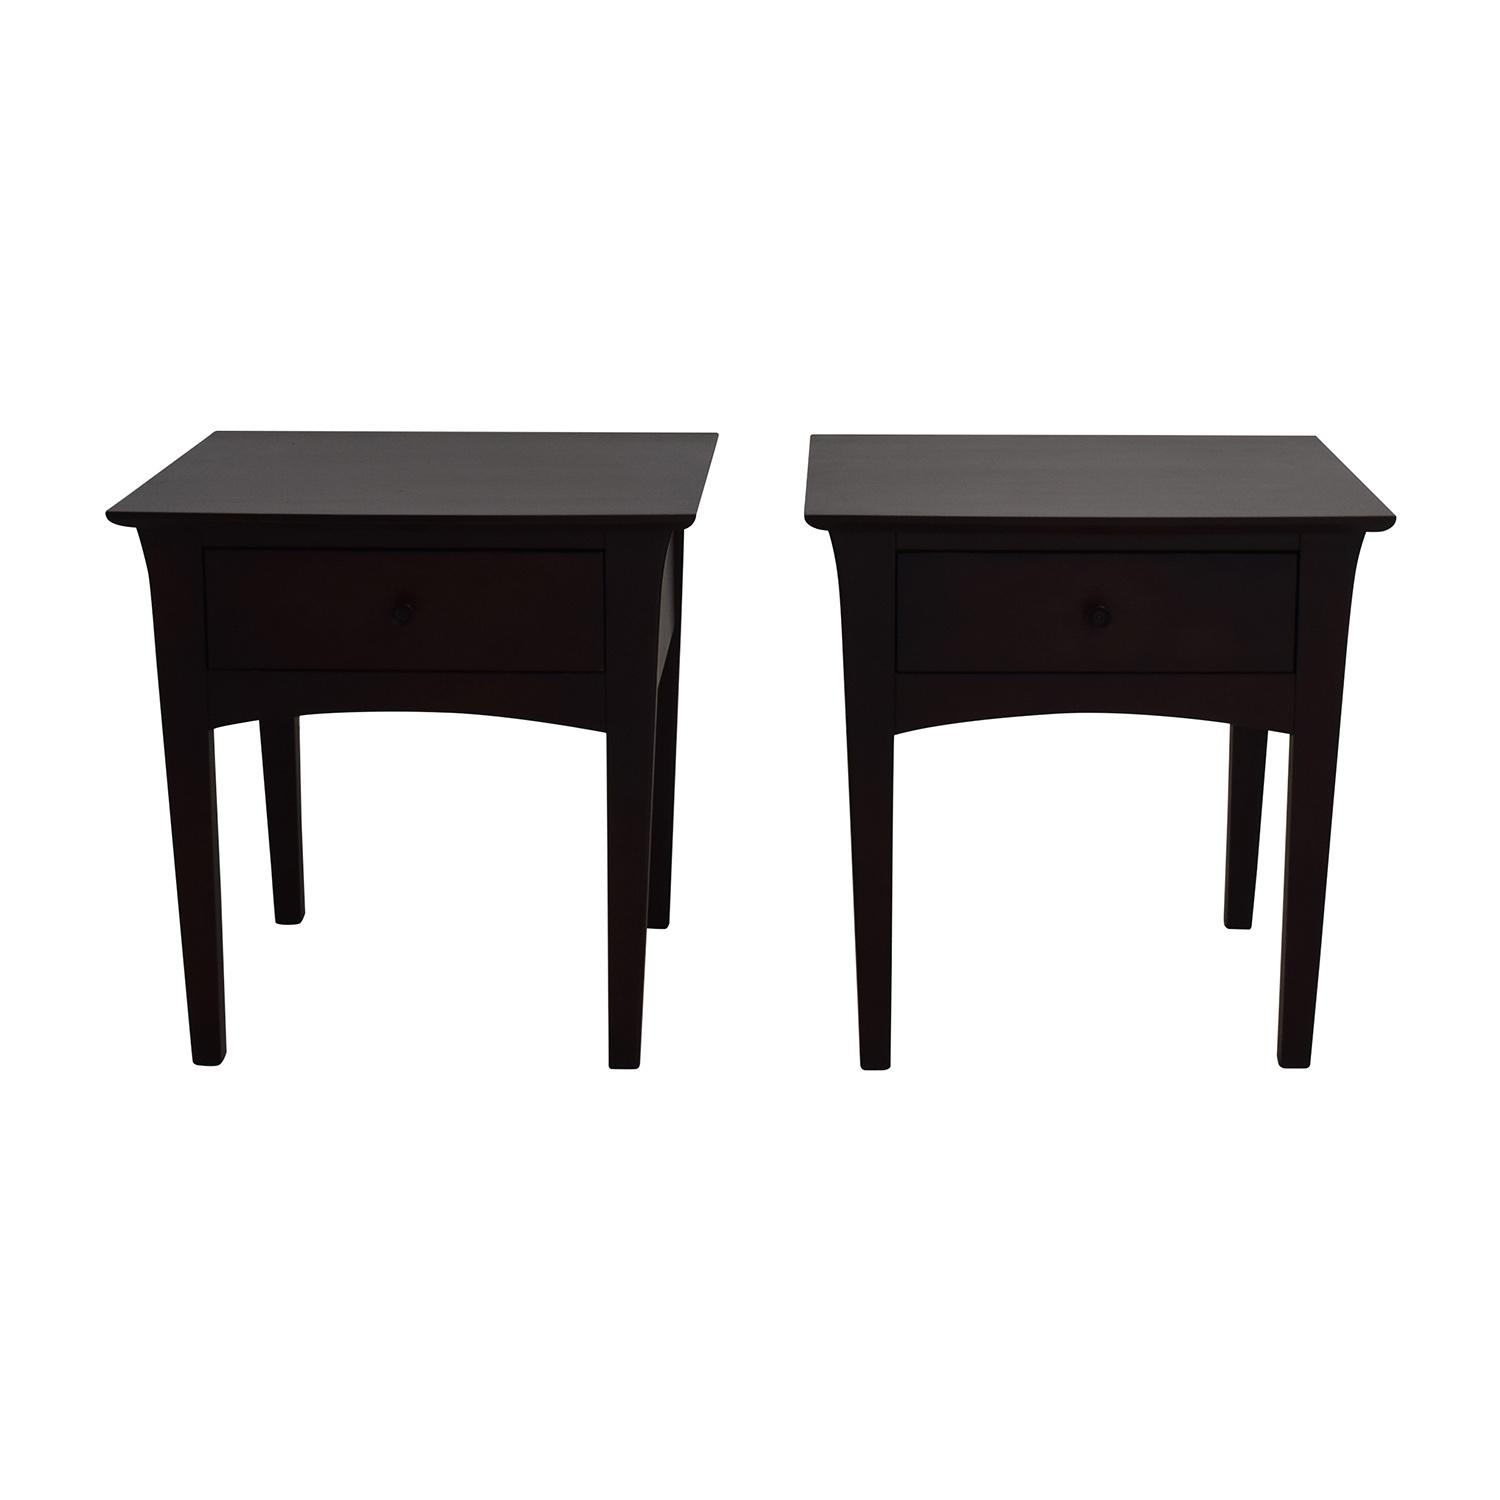 70% Off - Crate And Barrel Crate & Barrel Baronet Nightstands / Tables for Crate and Barrel Sofa Tables